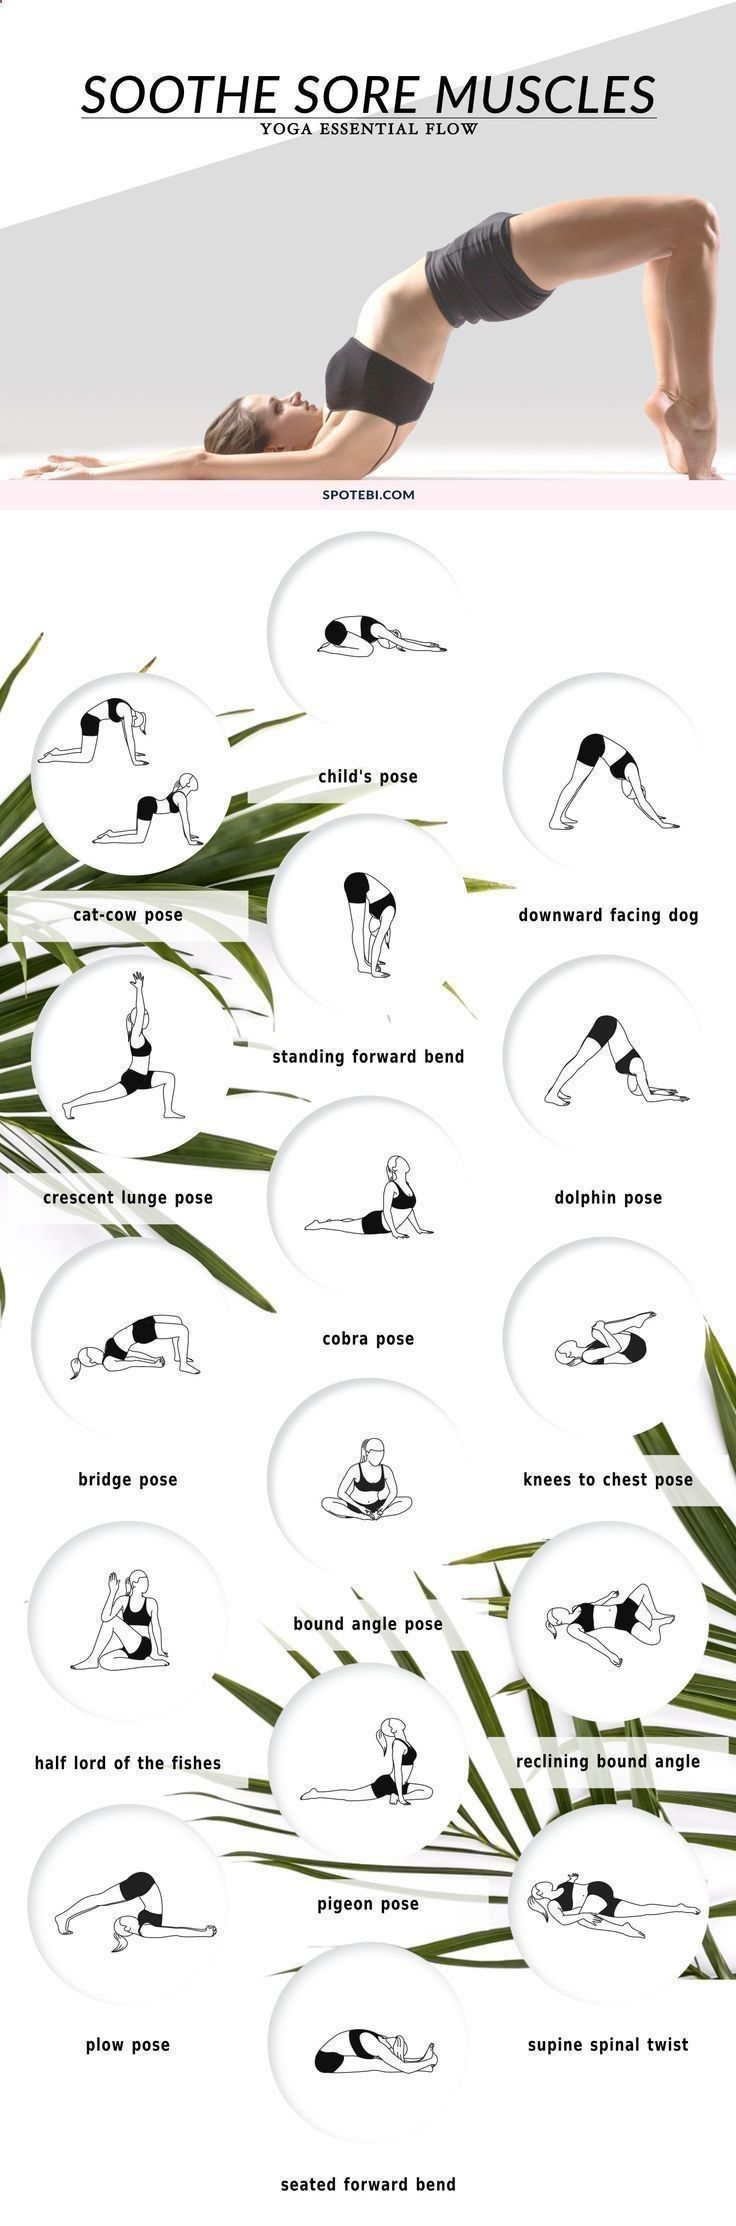 Lightweight Yoga Training - Lightweight Yoga Training - Six-Pack Abs, Muscle Building, or Weight Los...